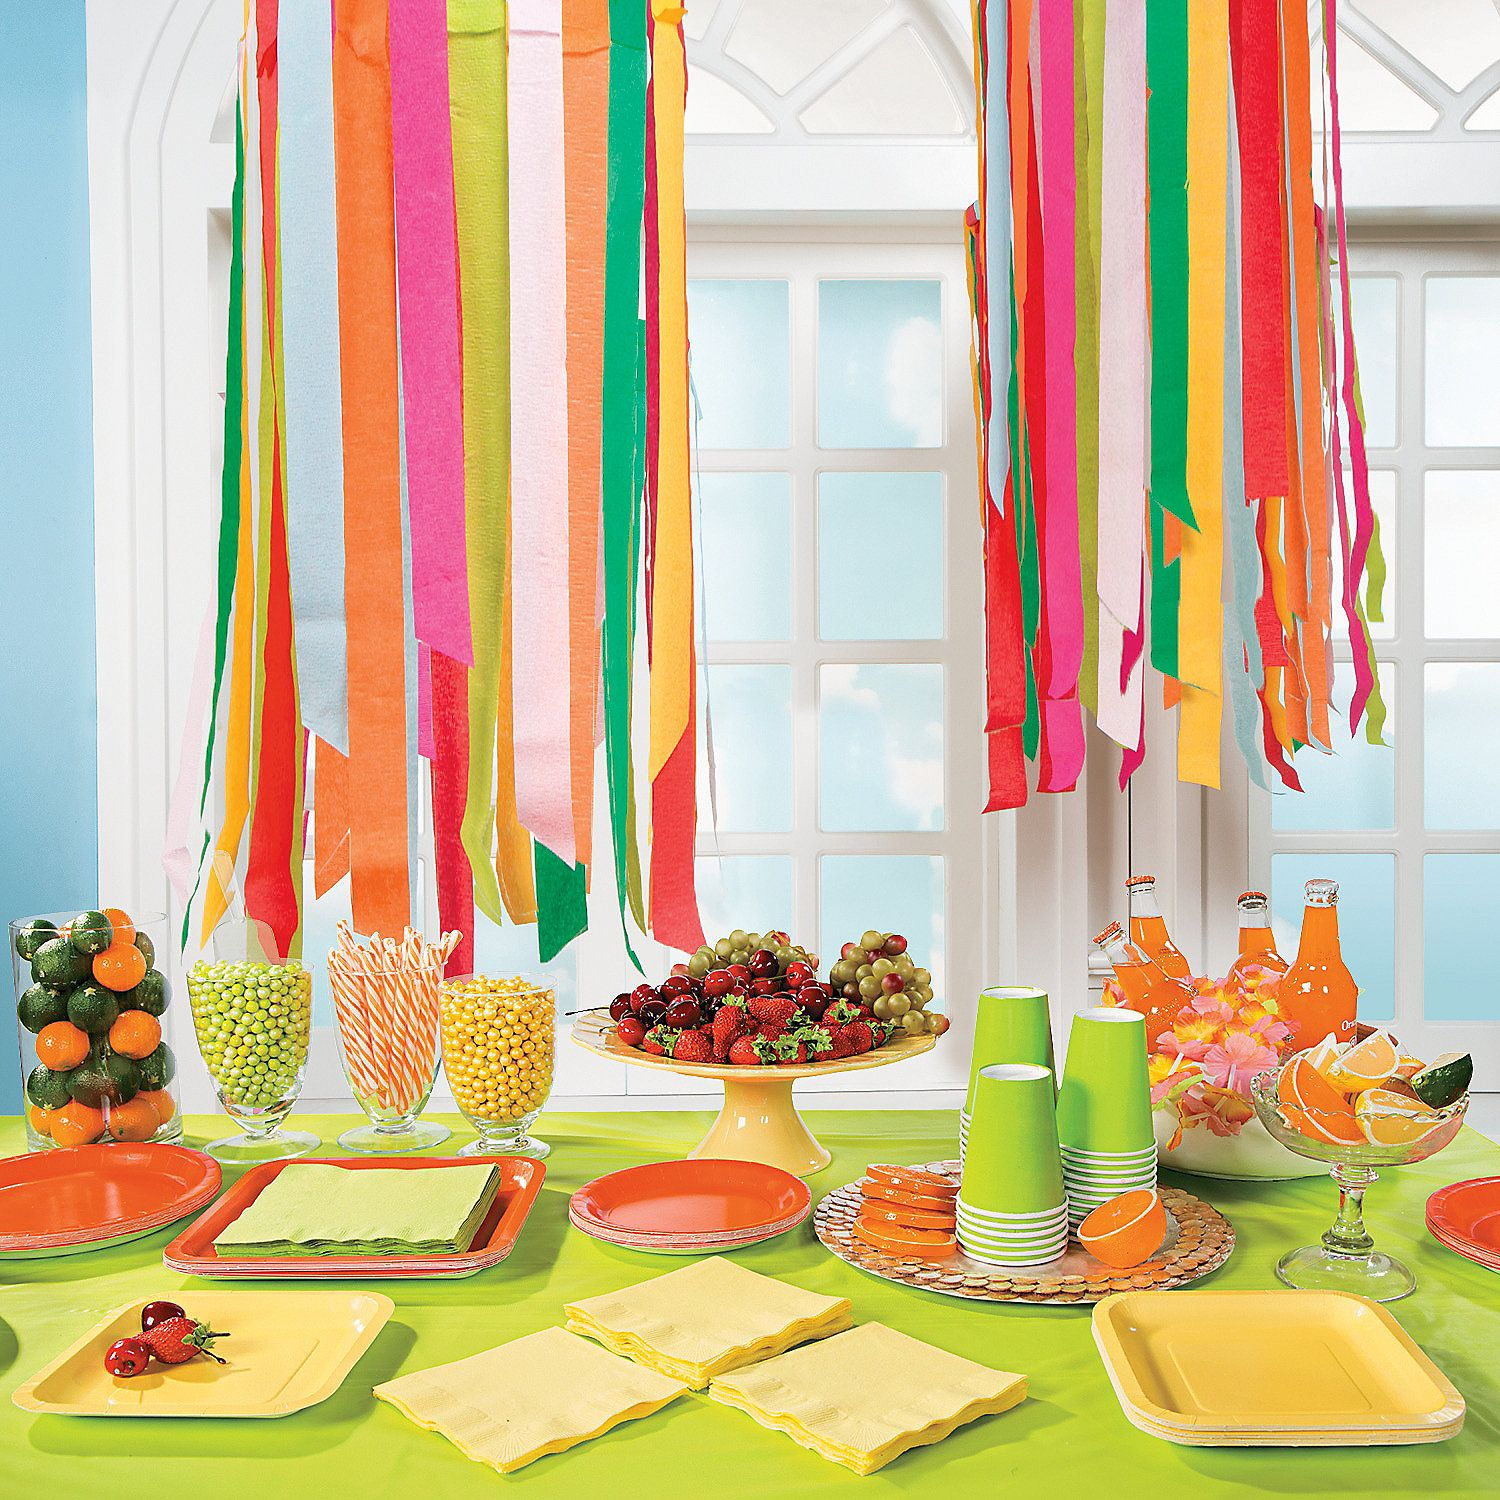 Crepe paper chandelier diy hang an embroidery hoop from celing with string adhere crepe paper - Paper decoration for birthday ...